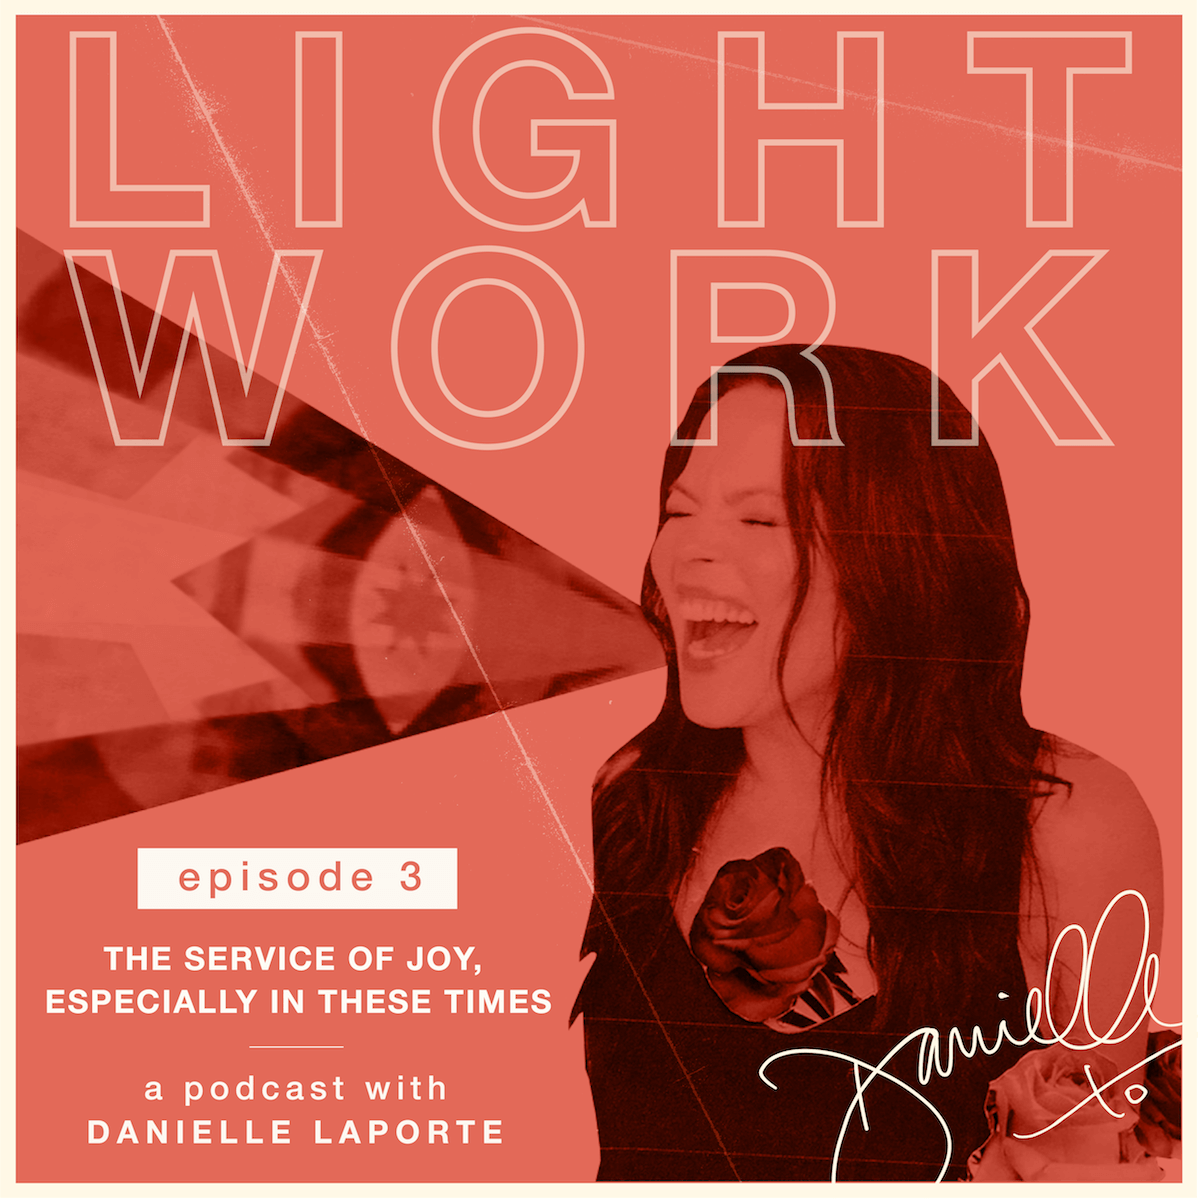 DanielleLaporte.LightWorkThe service of joy, especially in these times